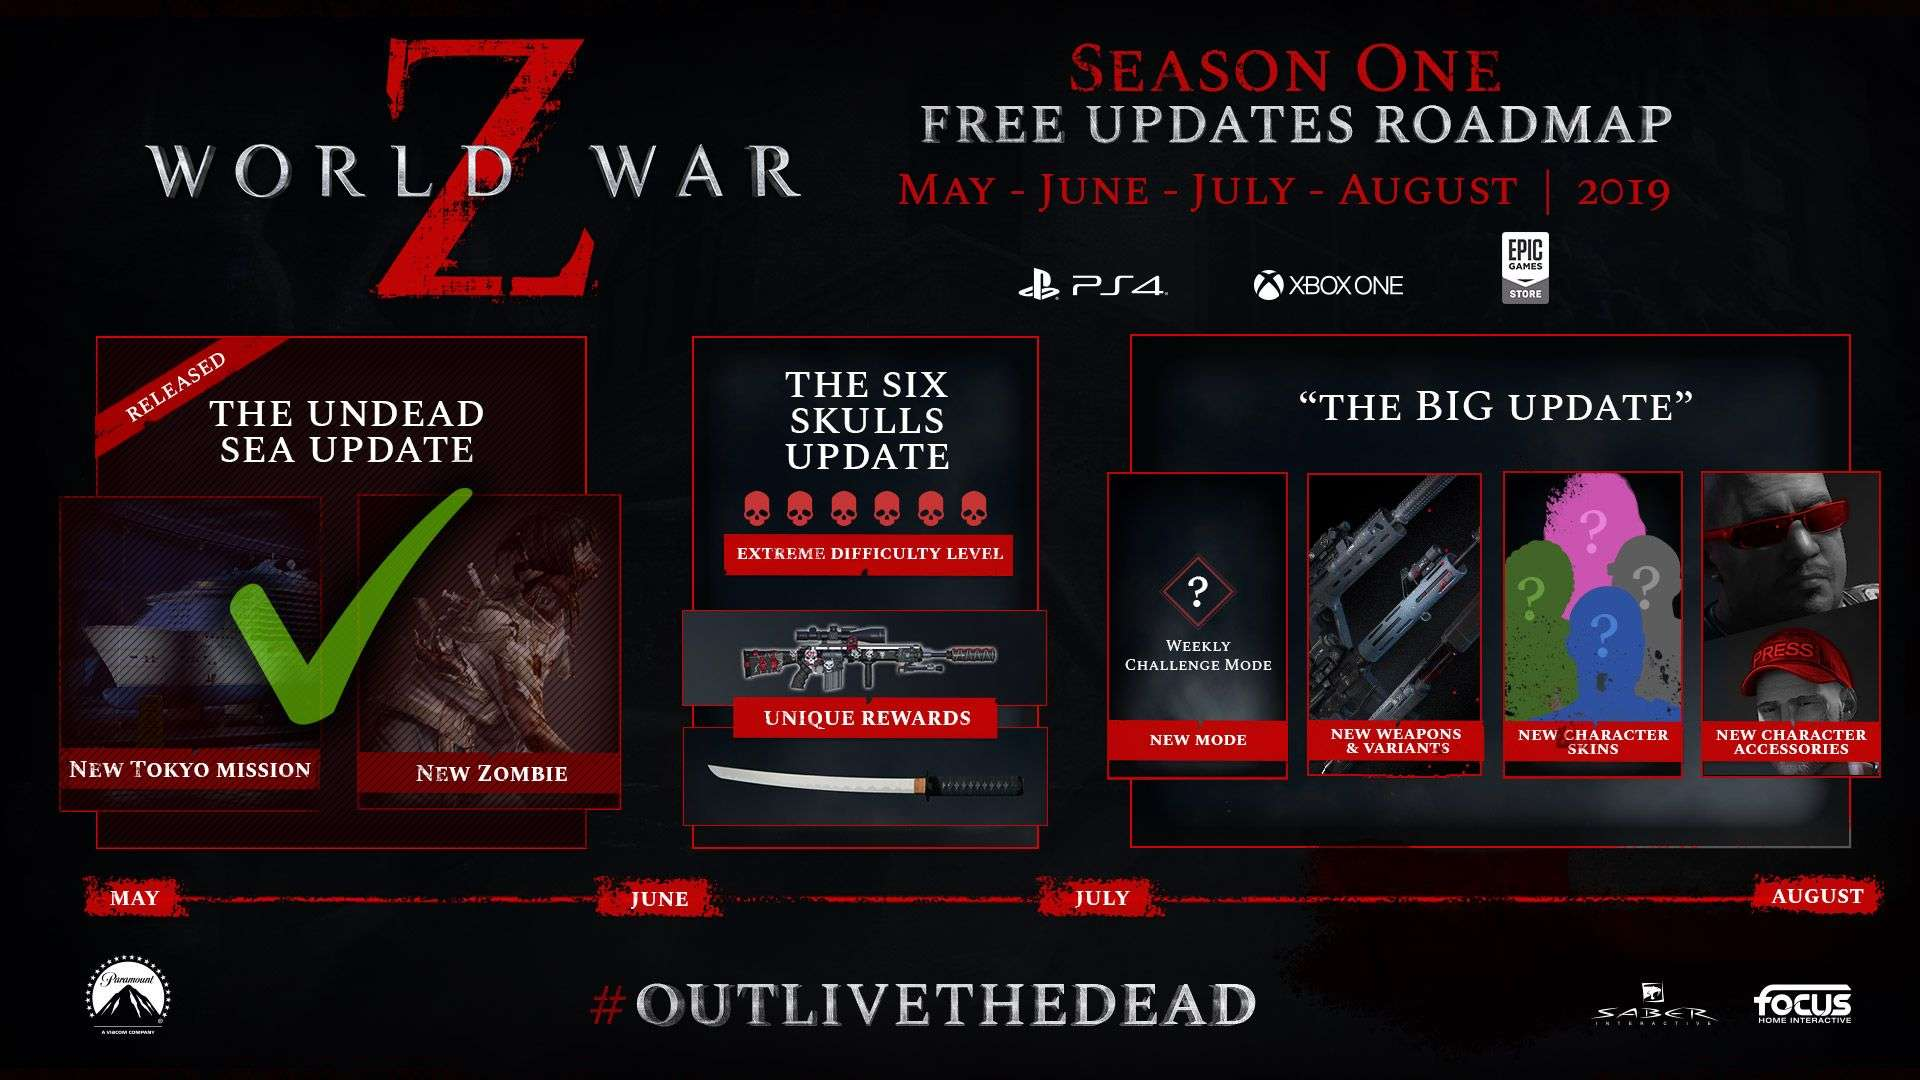 World-War-Z-Roadmap-Free-Updates